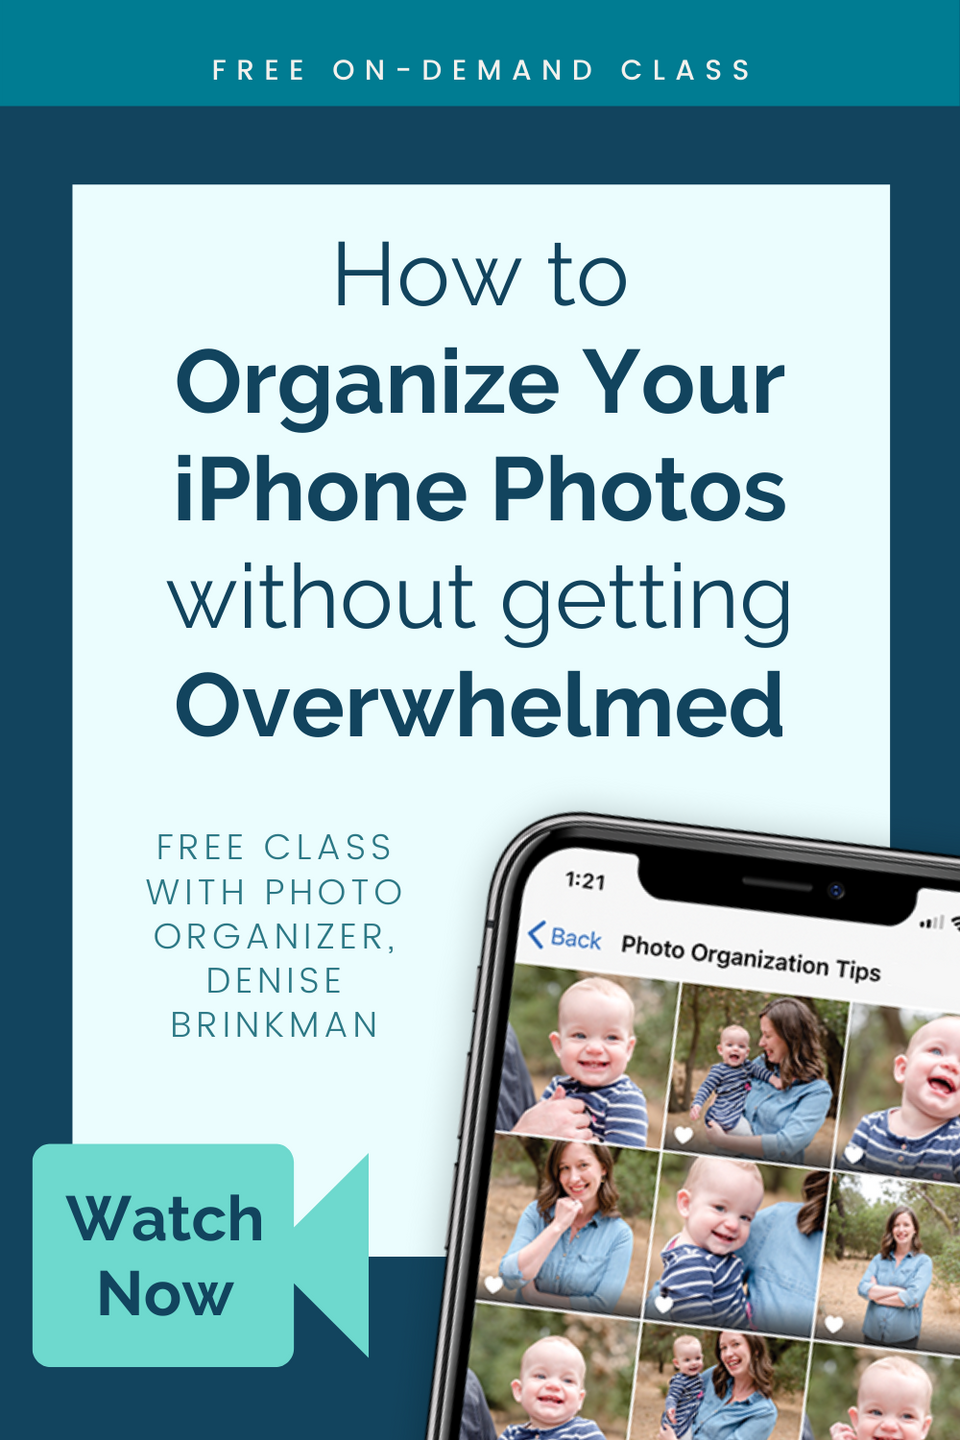 How to Organize Your iPhone Photos Without Getting Overwhelmed